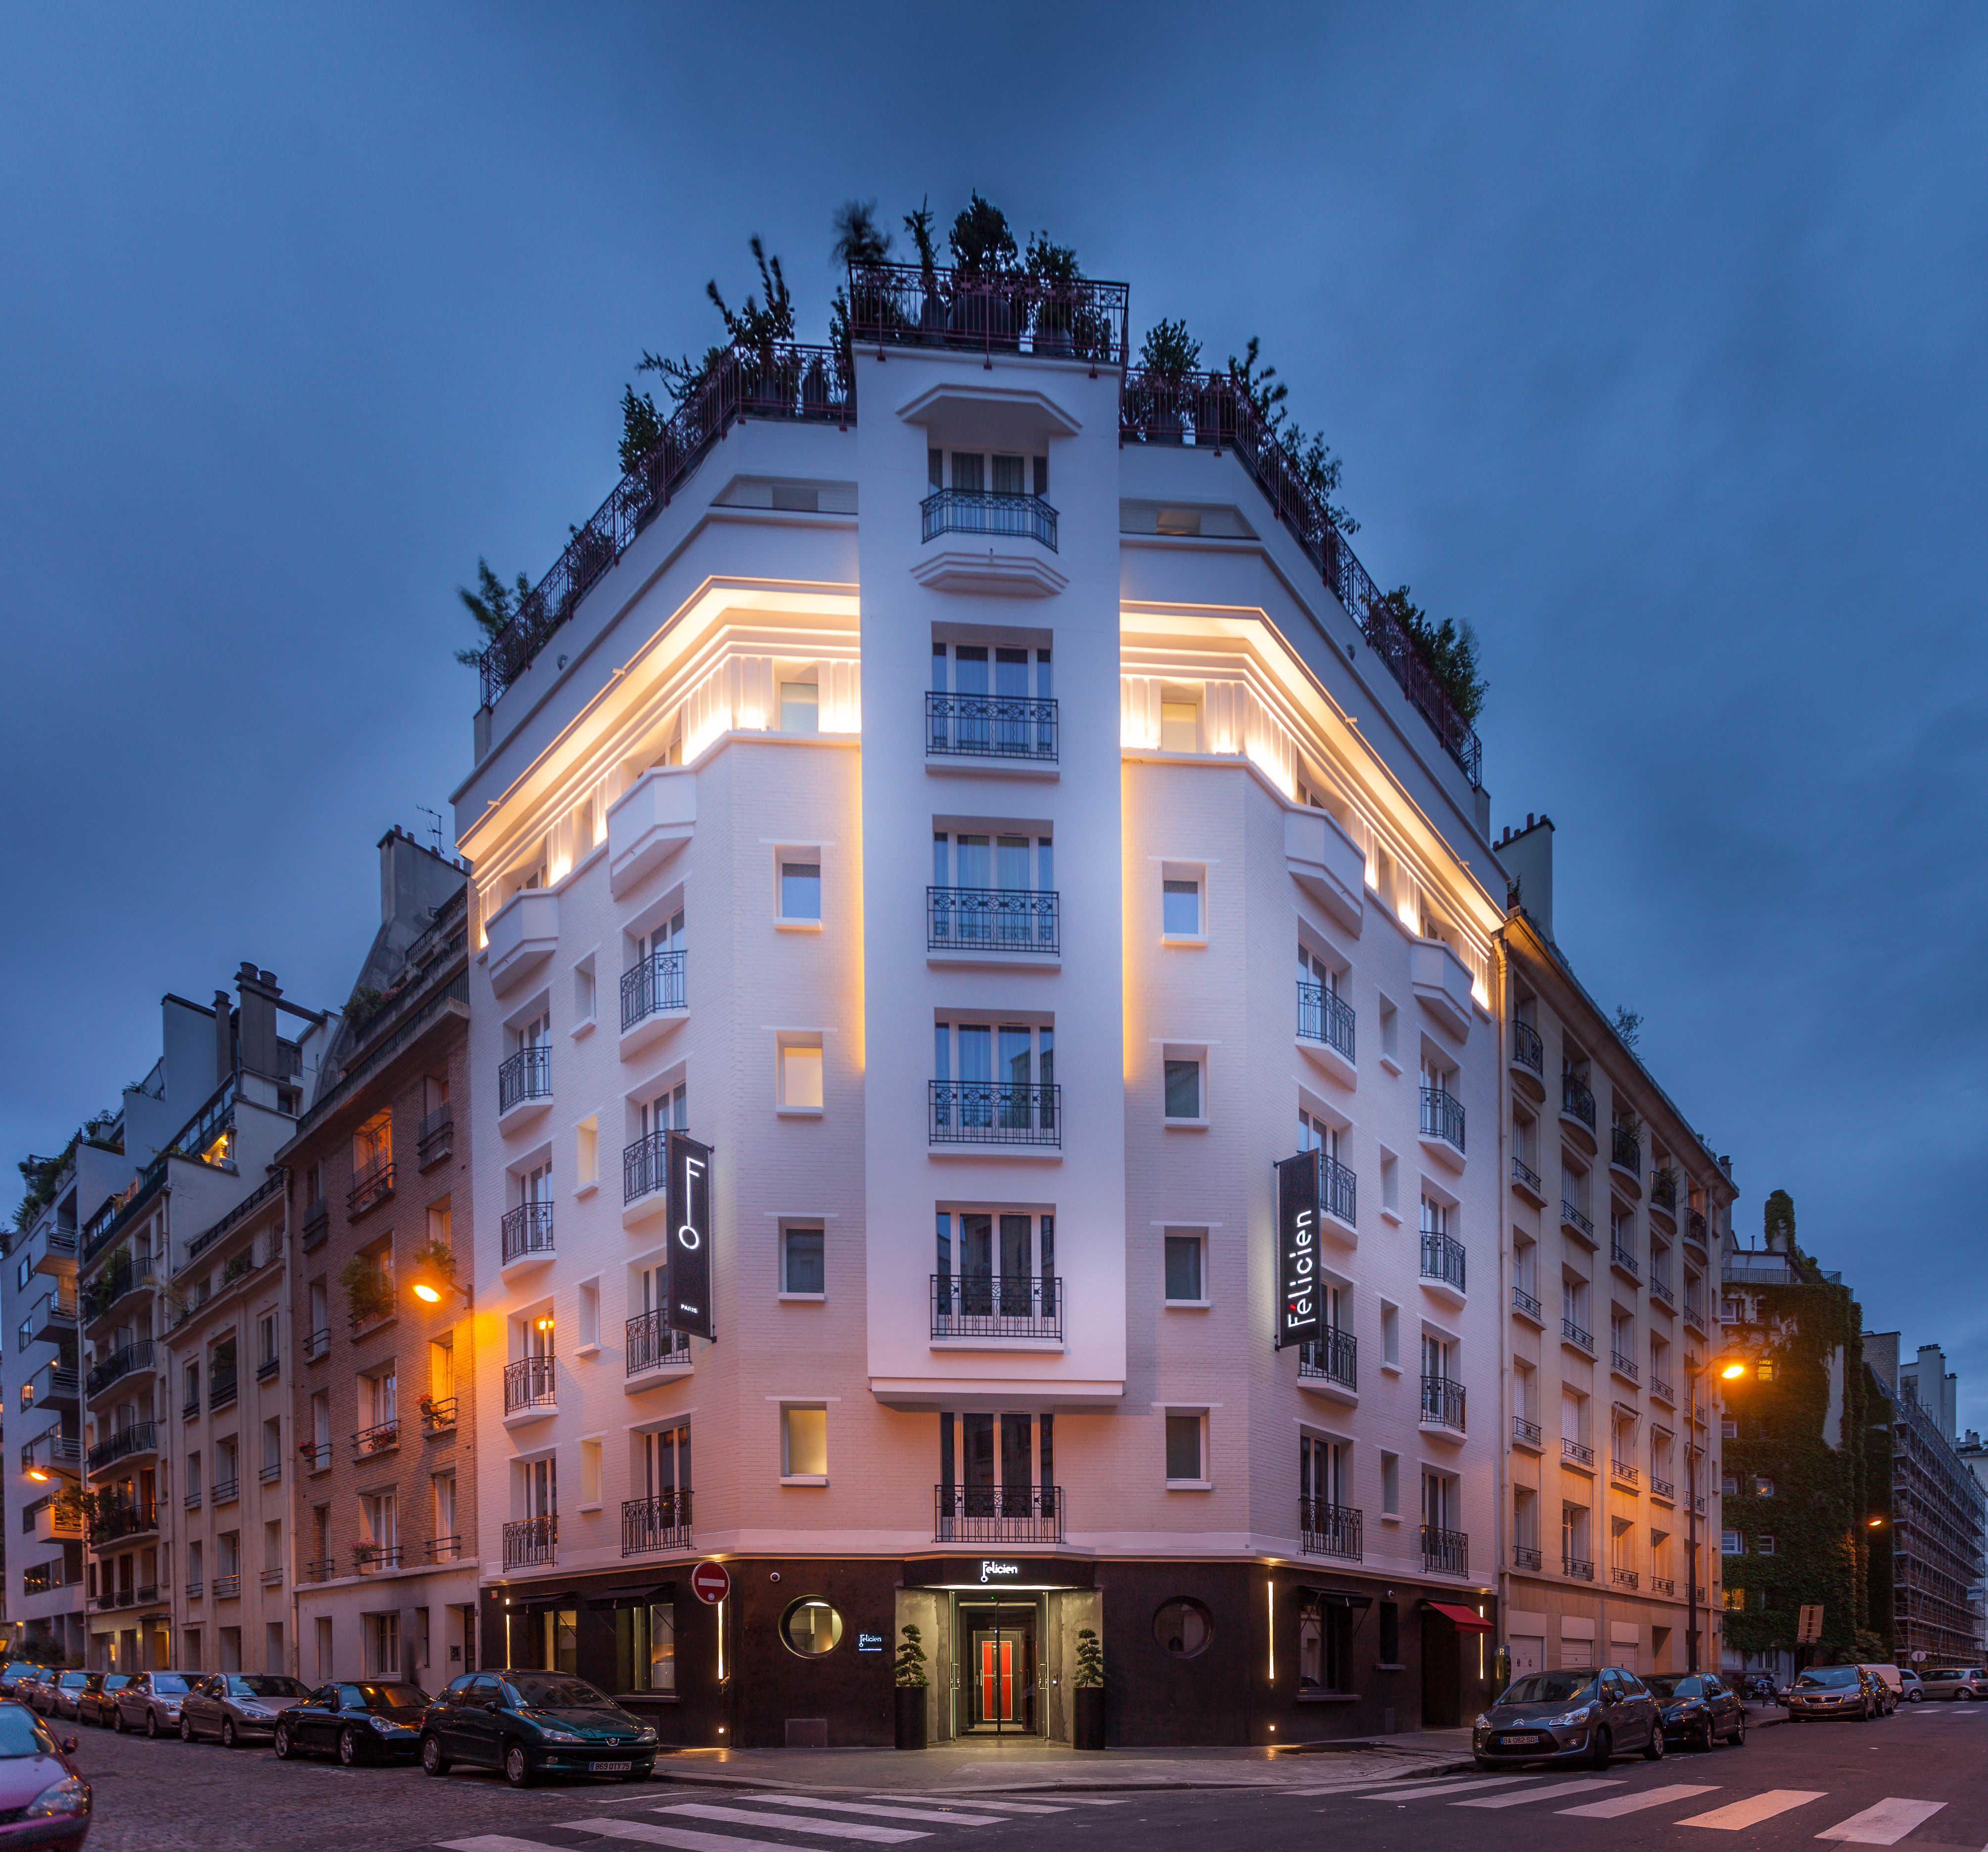 The Hotel Felicien Paris By Elegancia Is A Boutique Imagined Olivier Lapidus Near Eiffel Tower And Trocadero In